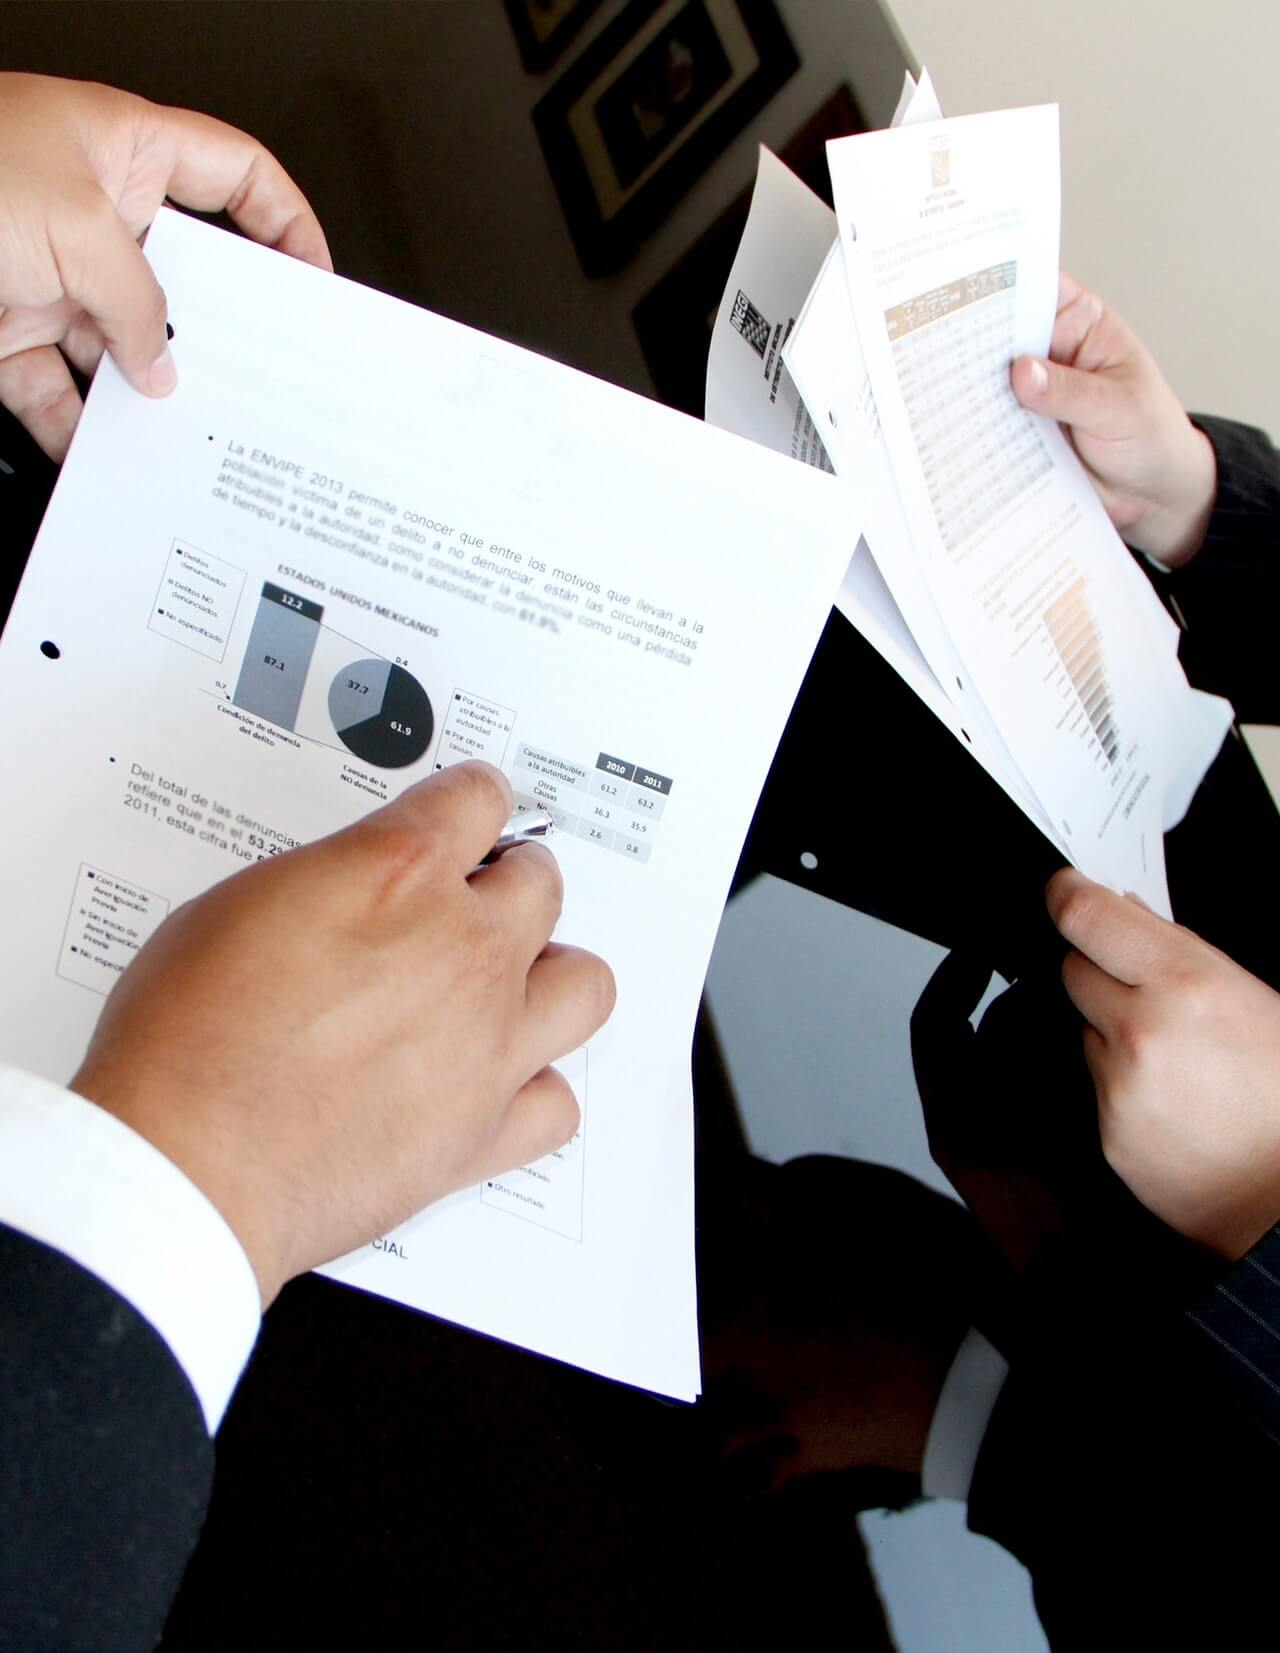 hands holding financial reports